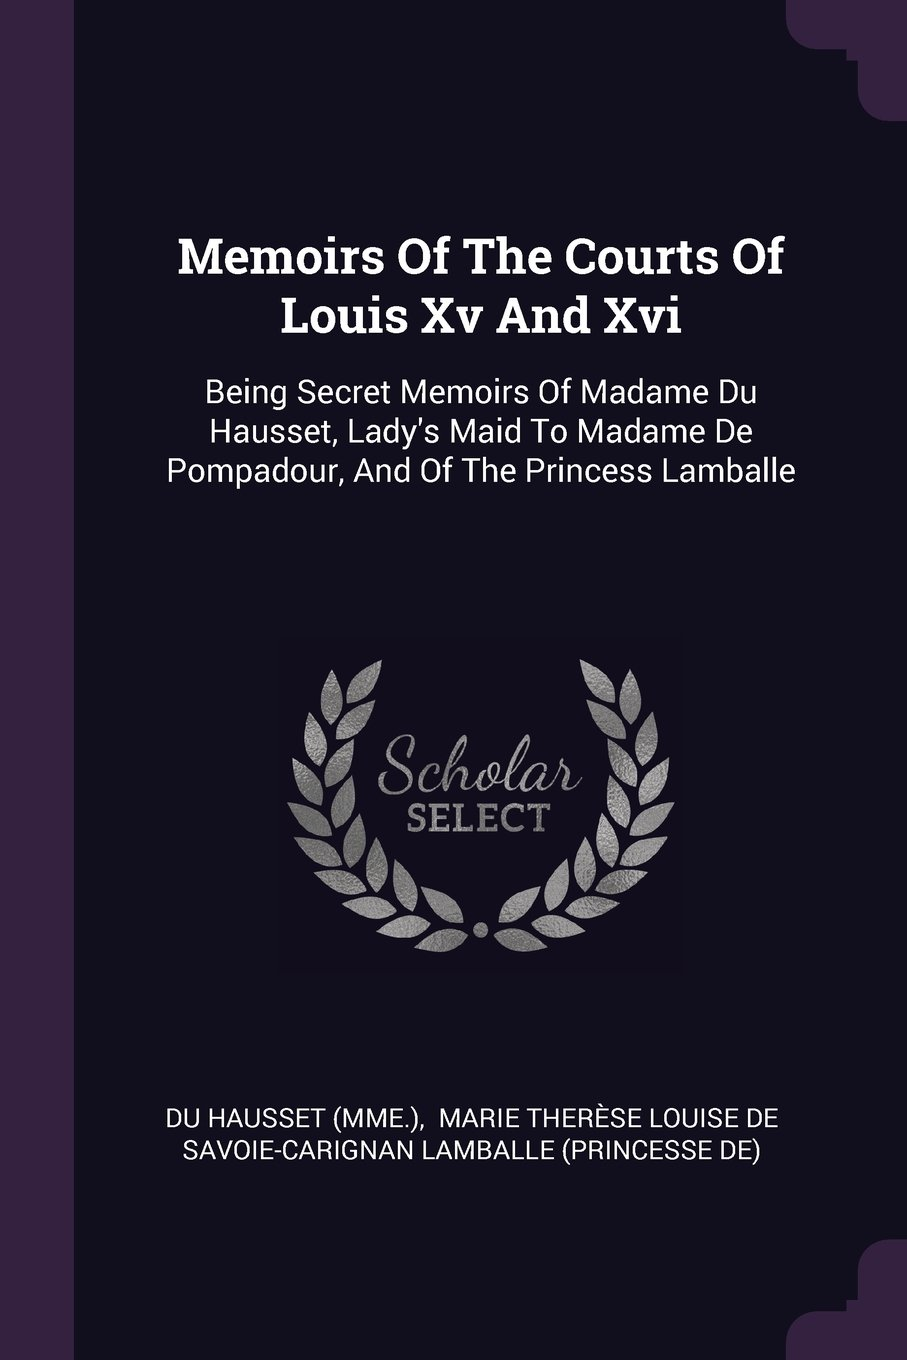 Read Online Memoirs Of The Courts Of Louis Xv And Xvi: Being Secret Memoirs Of Madame Du Hausset, Lady's Maid To Madame De Pompadour, And Of The Princess Lamballe PDF Text fb2 ebook